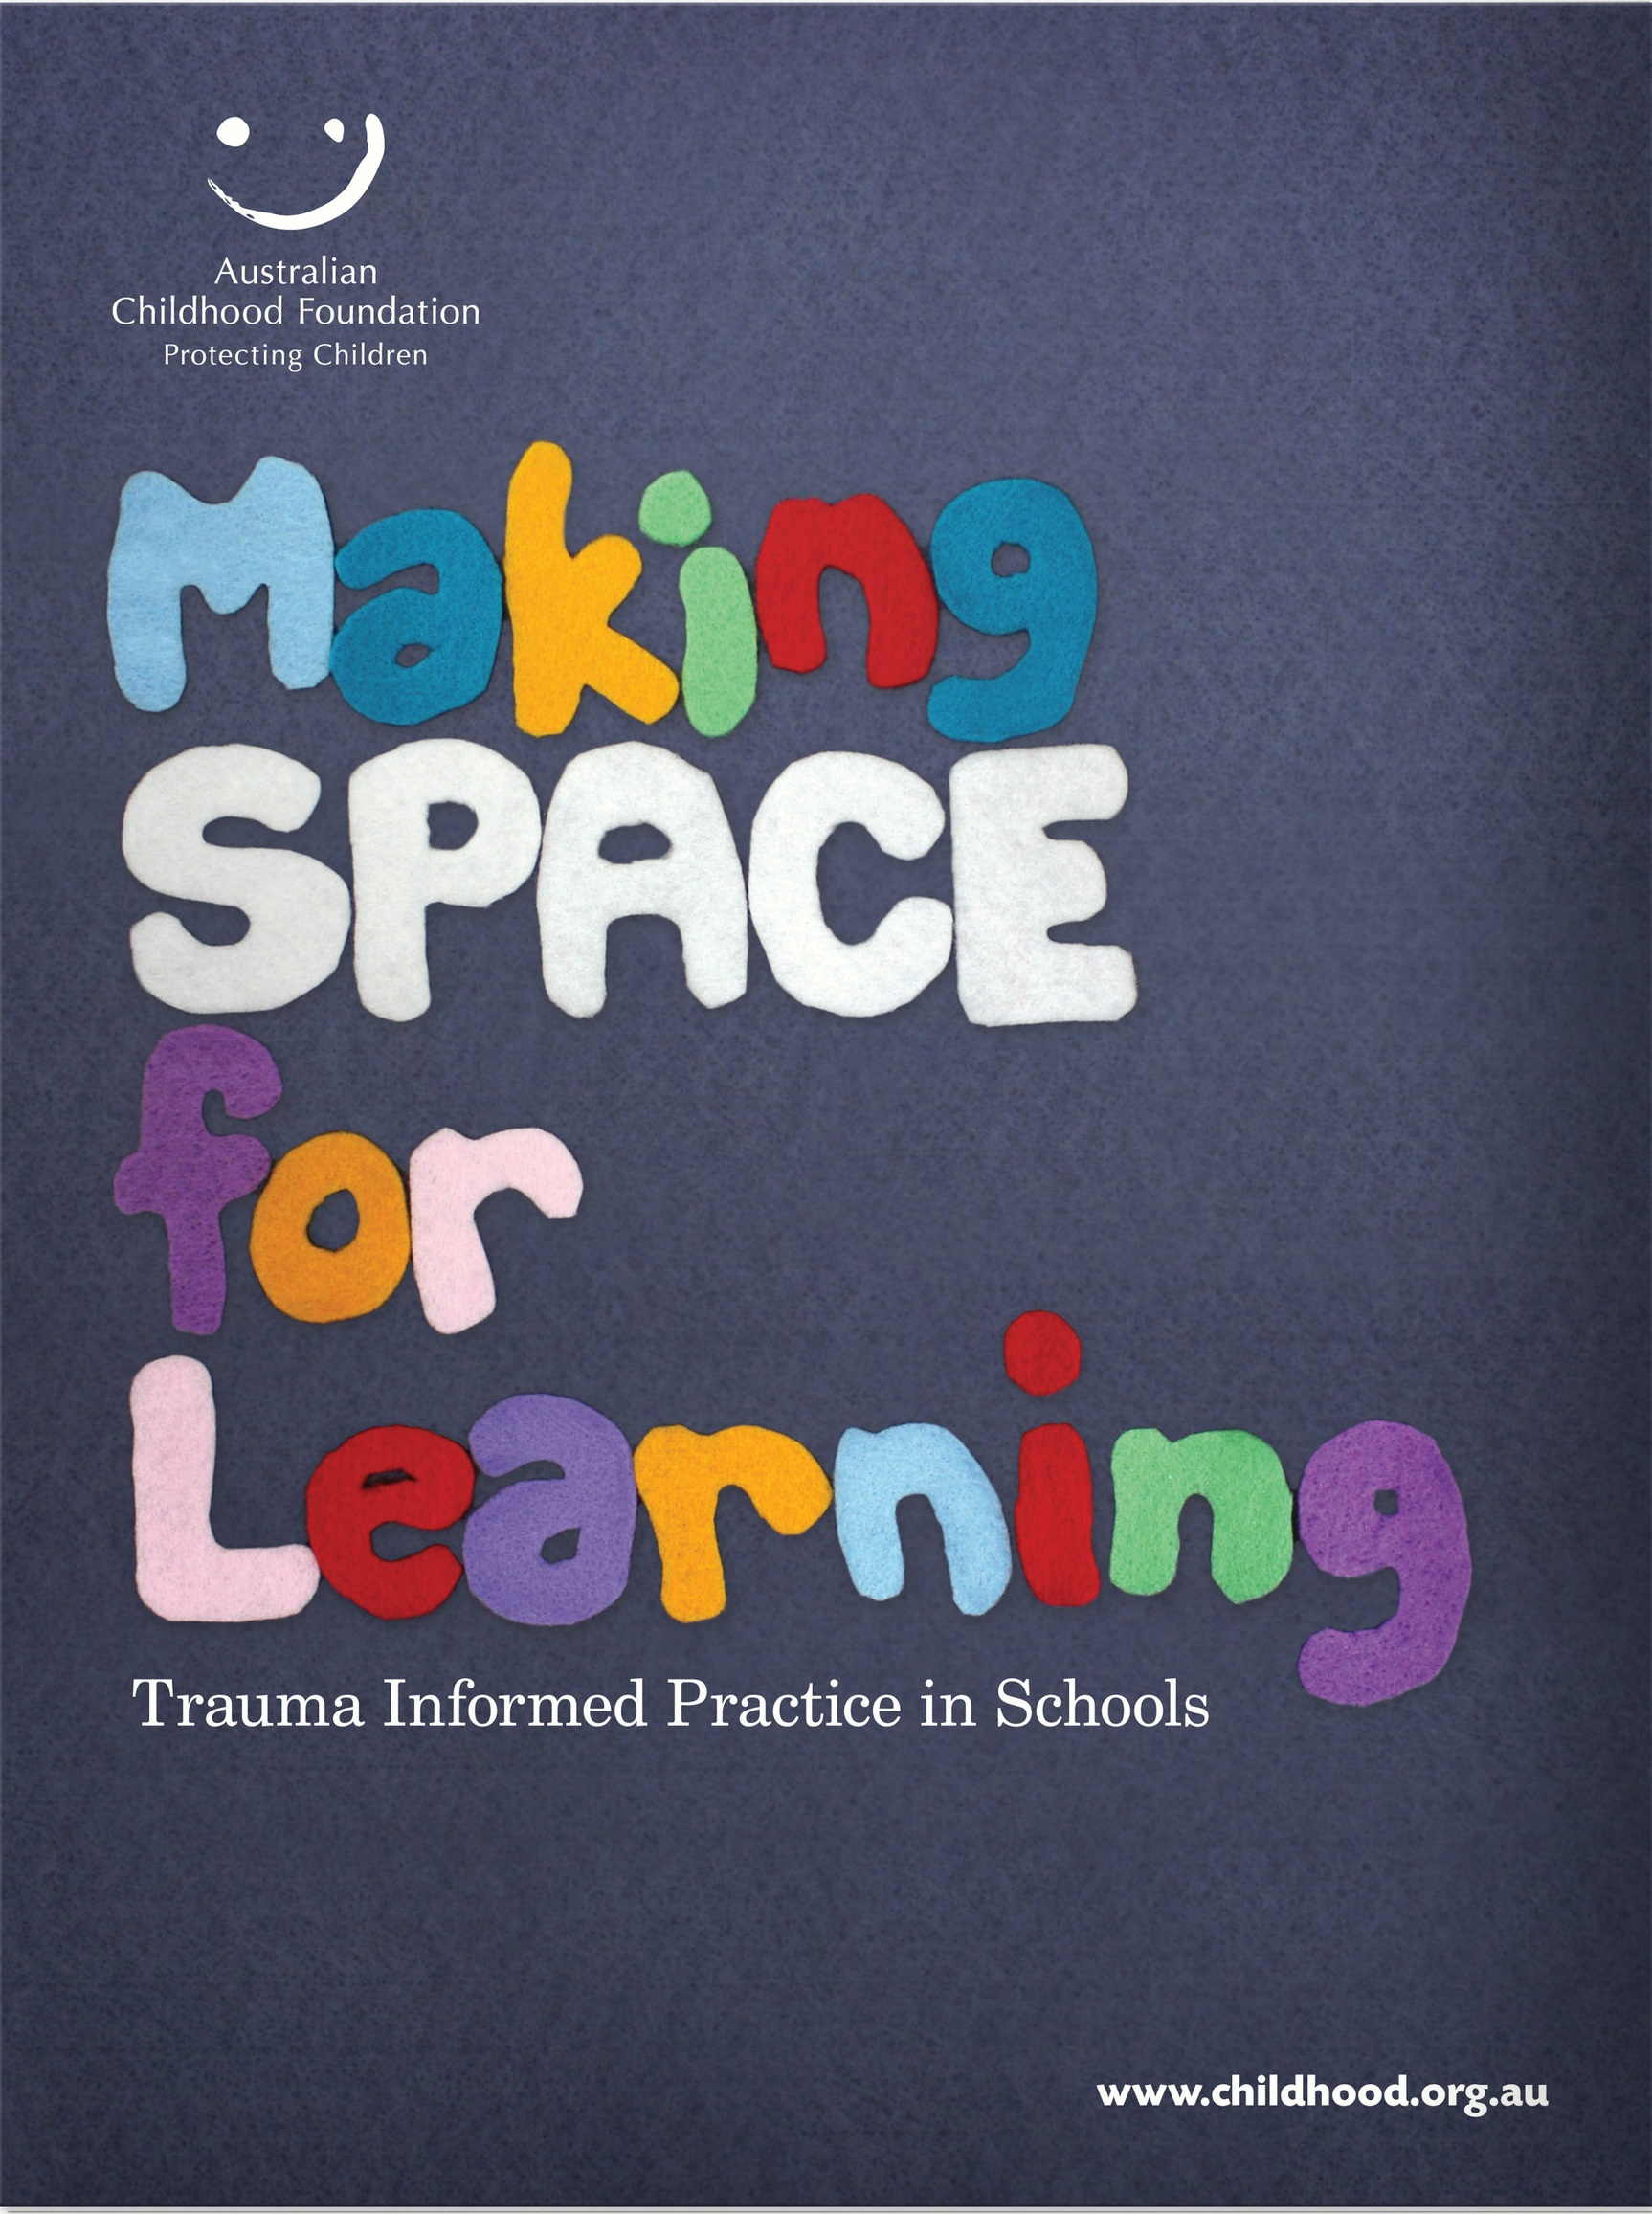 Making SPACE for Learning